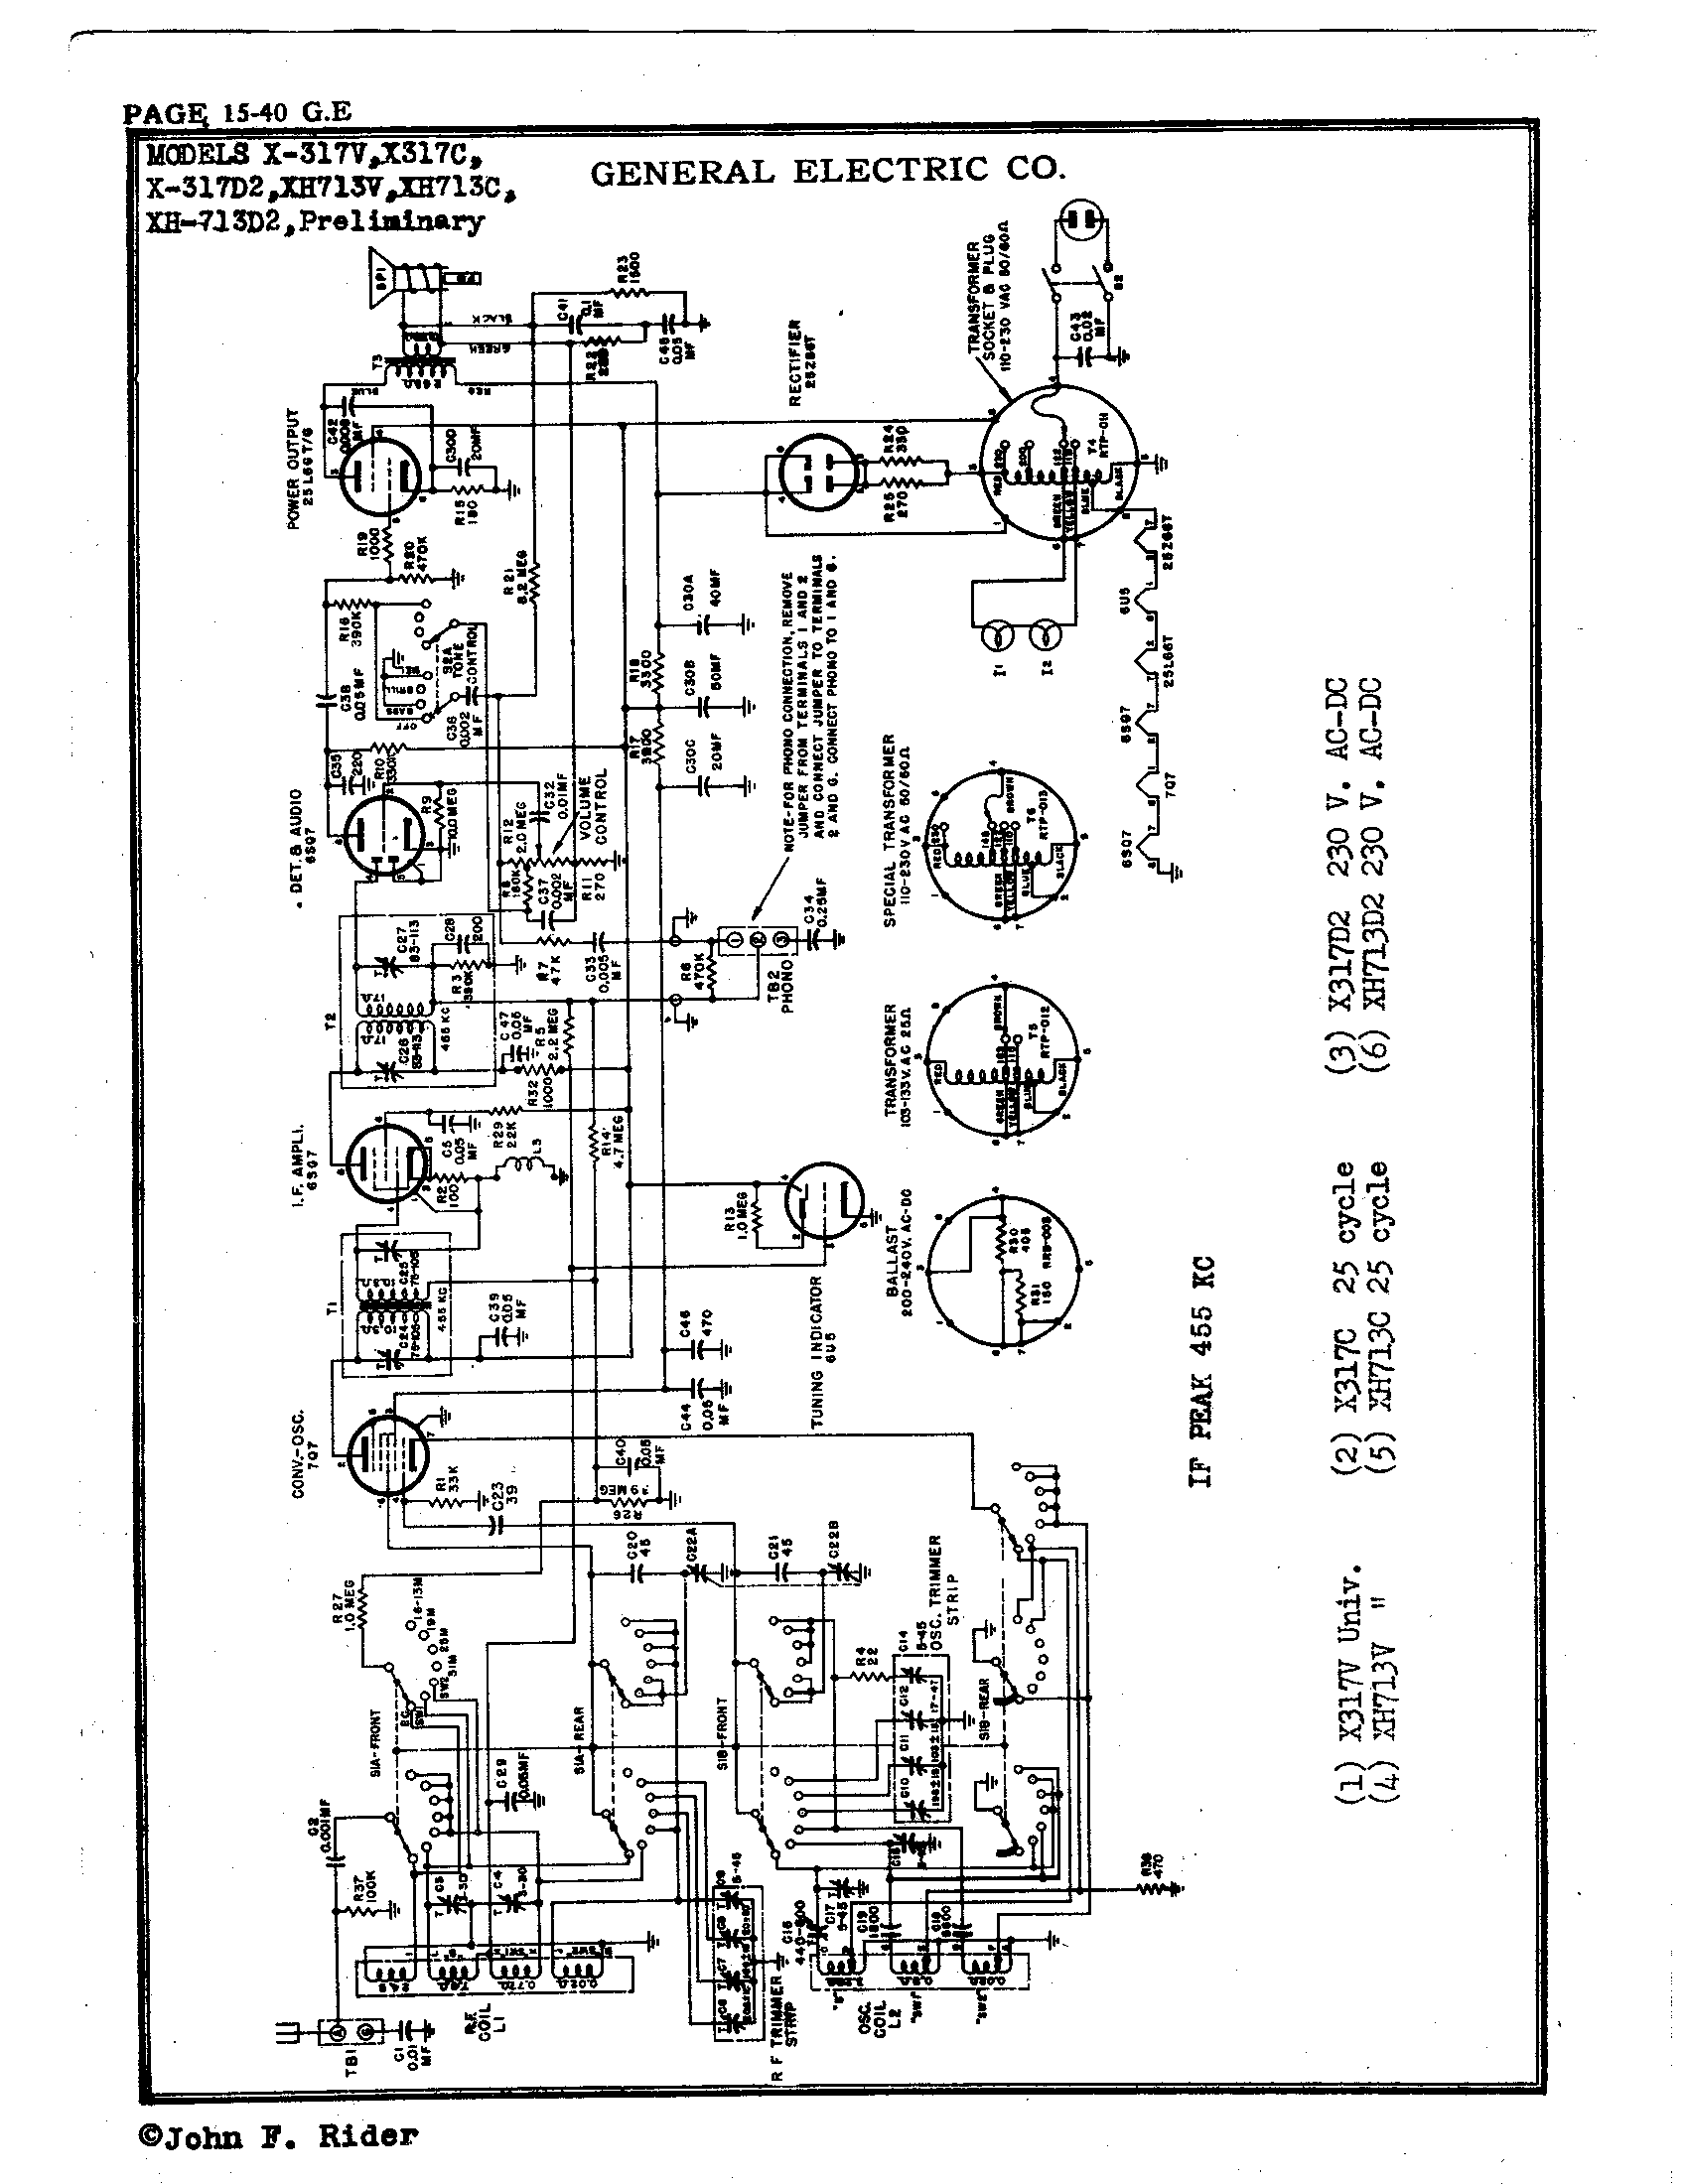 Rs Rca Electrical Schematic Power Supply